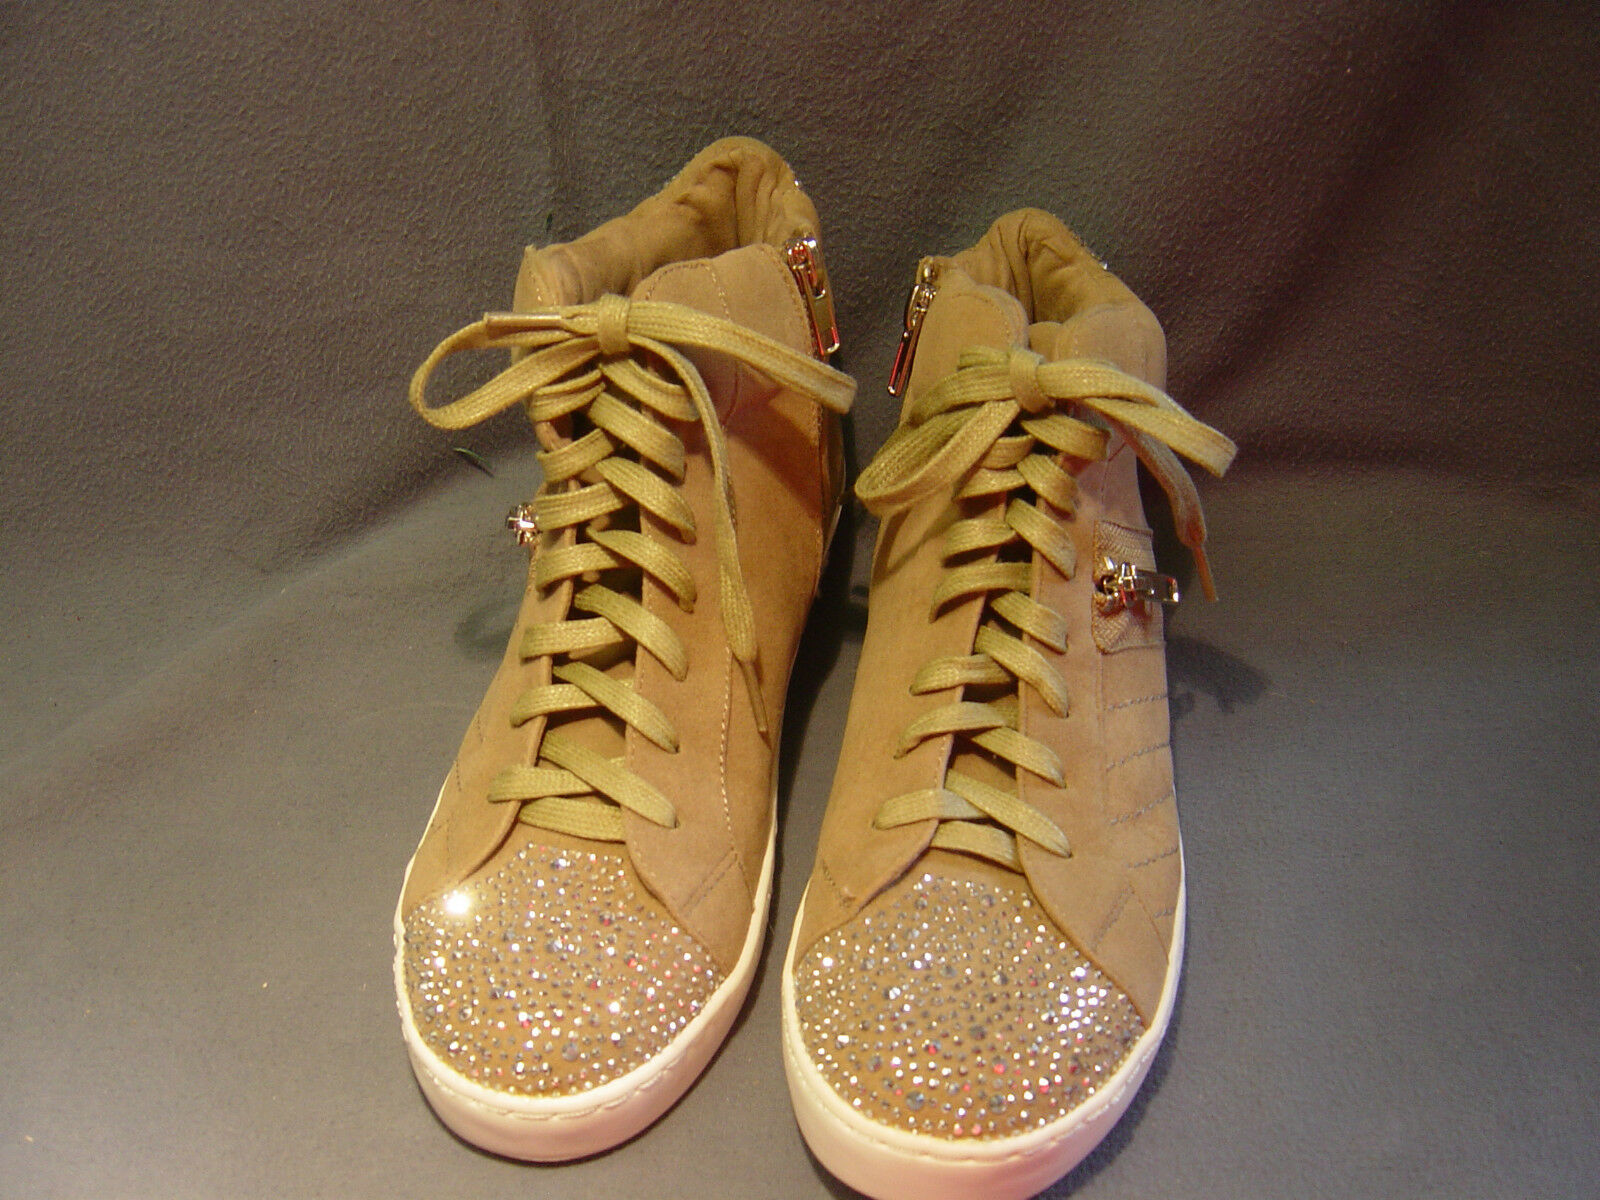 WOMEN'S FERGALIOUS TAN SPARKLEY ATHLETIC WALKING RUNNING LACE UP SHOES SIZE 8M